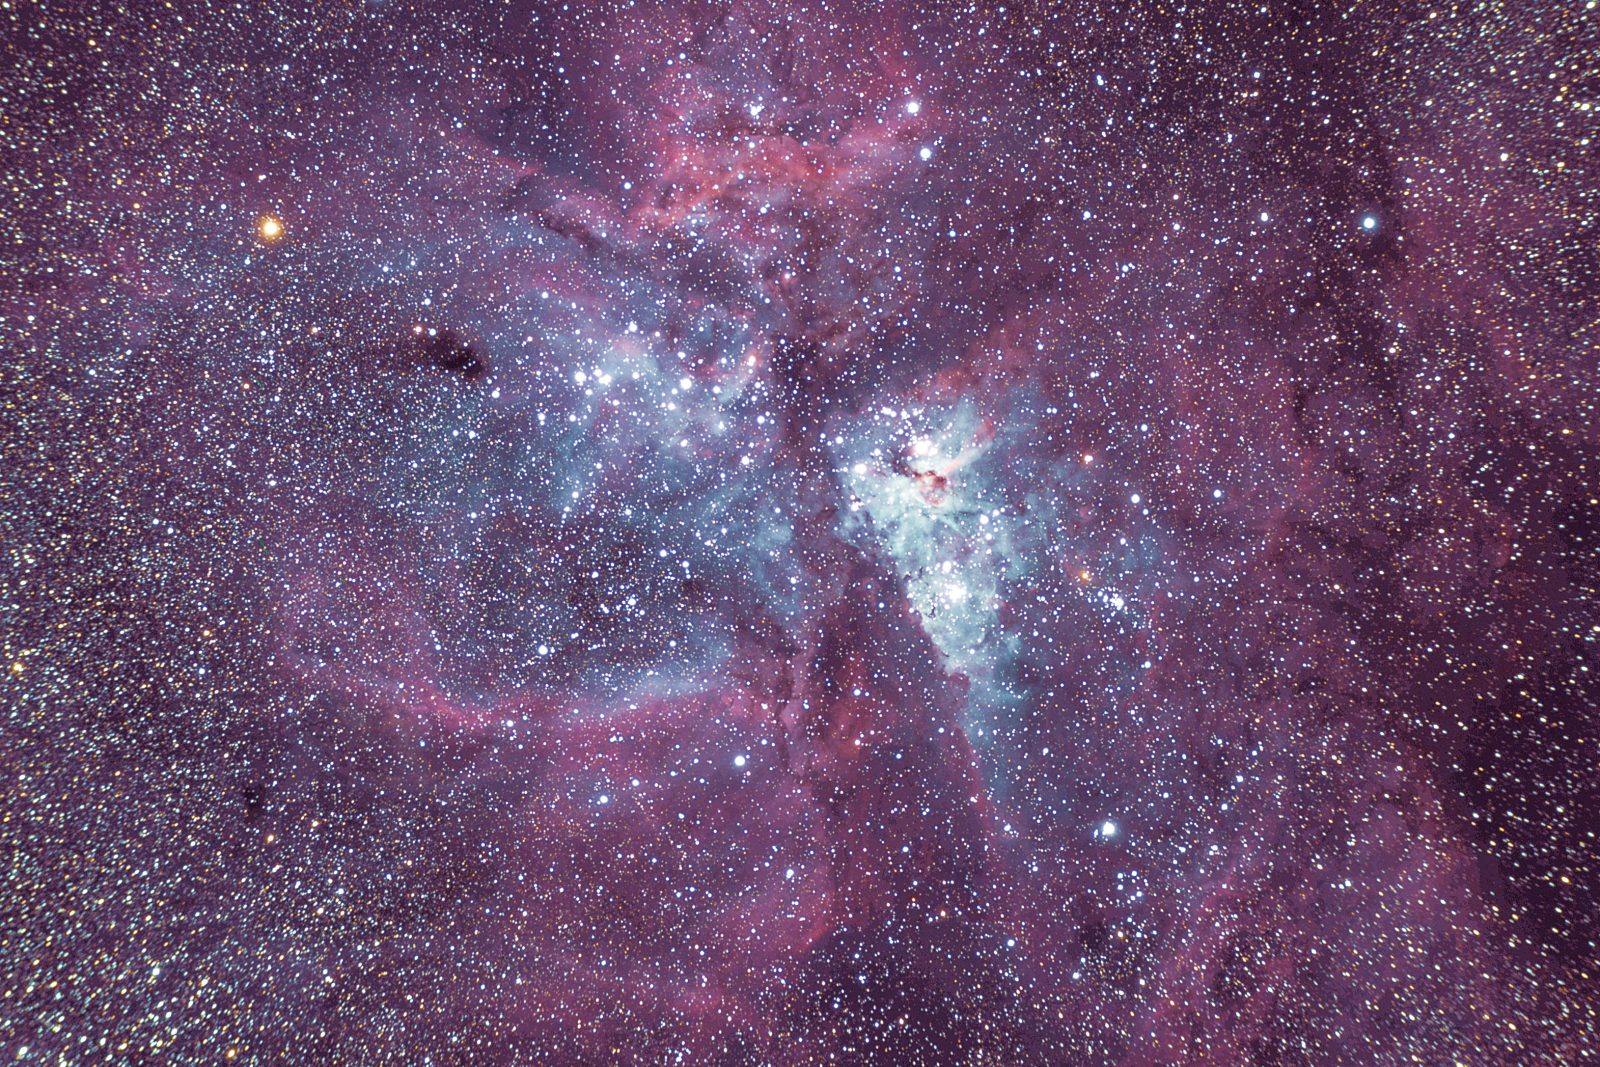 Eta Carinae may be about to explode, for the second time. Around 150 years ago, it underwent an unusual outburst, making it one of the brightest stars in the night sky and releasing plumes of gas and debris to create a magnificent red nebula—perhaps the forerunner of a complete supernova event. Despite being some 7500 light years distant from Earth, it's bright enough to be seen with the naked eye.